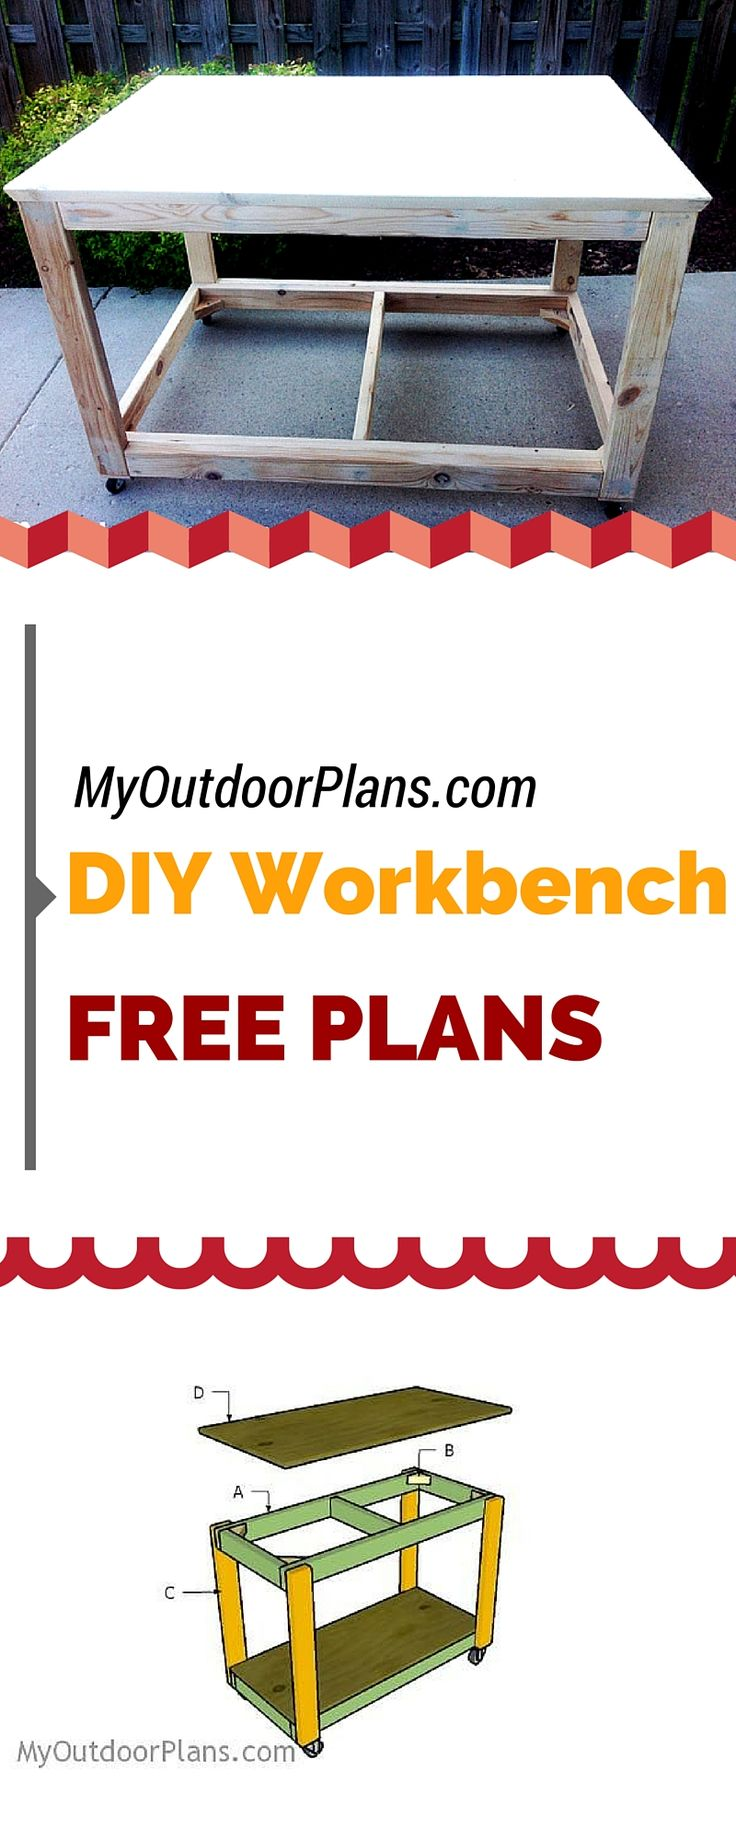 100 best images about best of diy projects on pinterest arbor this step by step diy woodworking project is about portable workbench plans